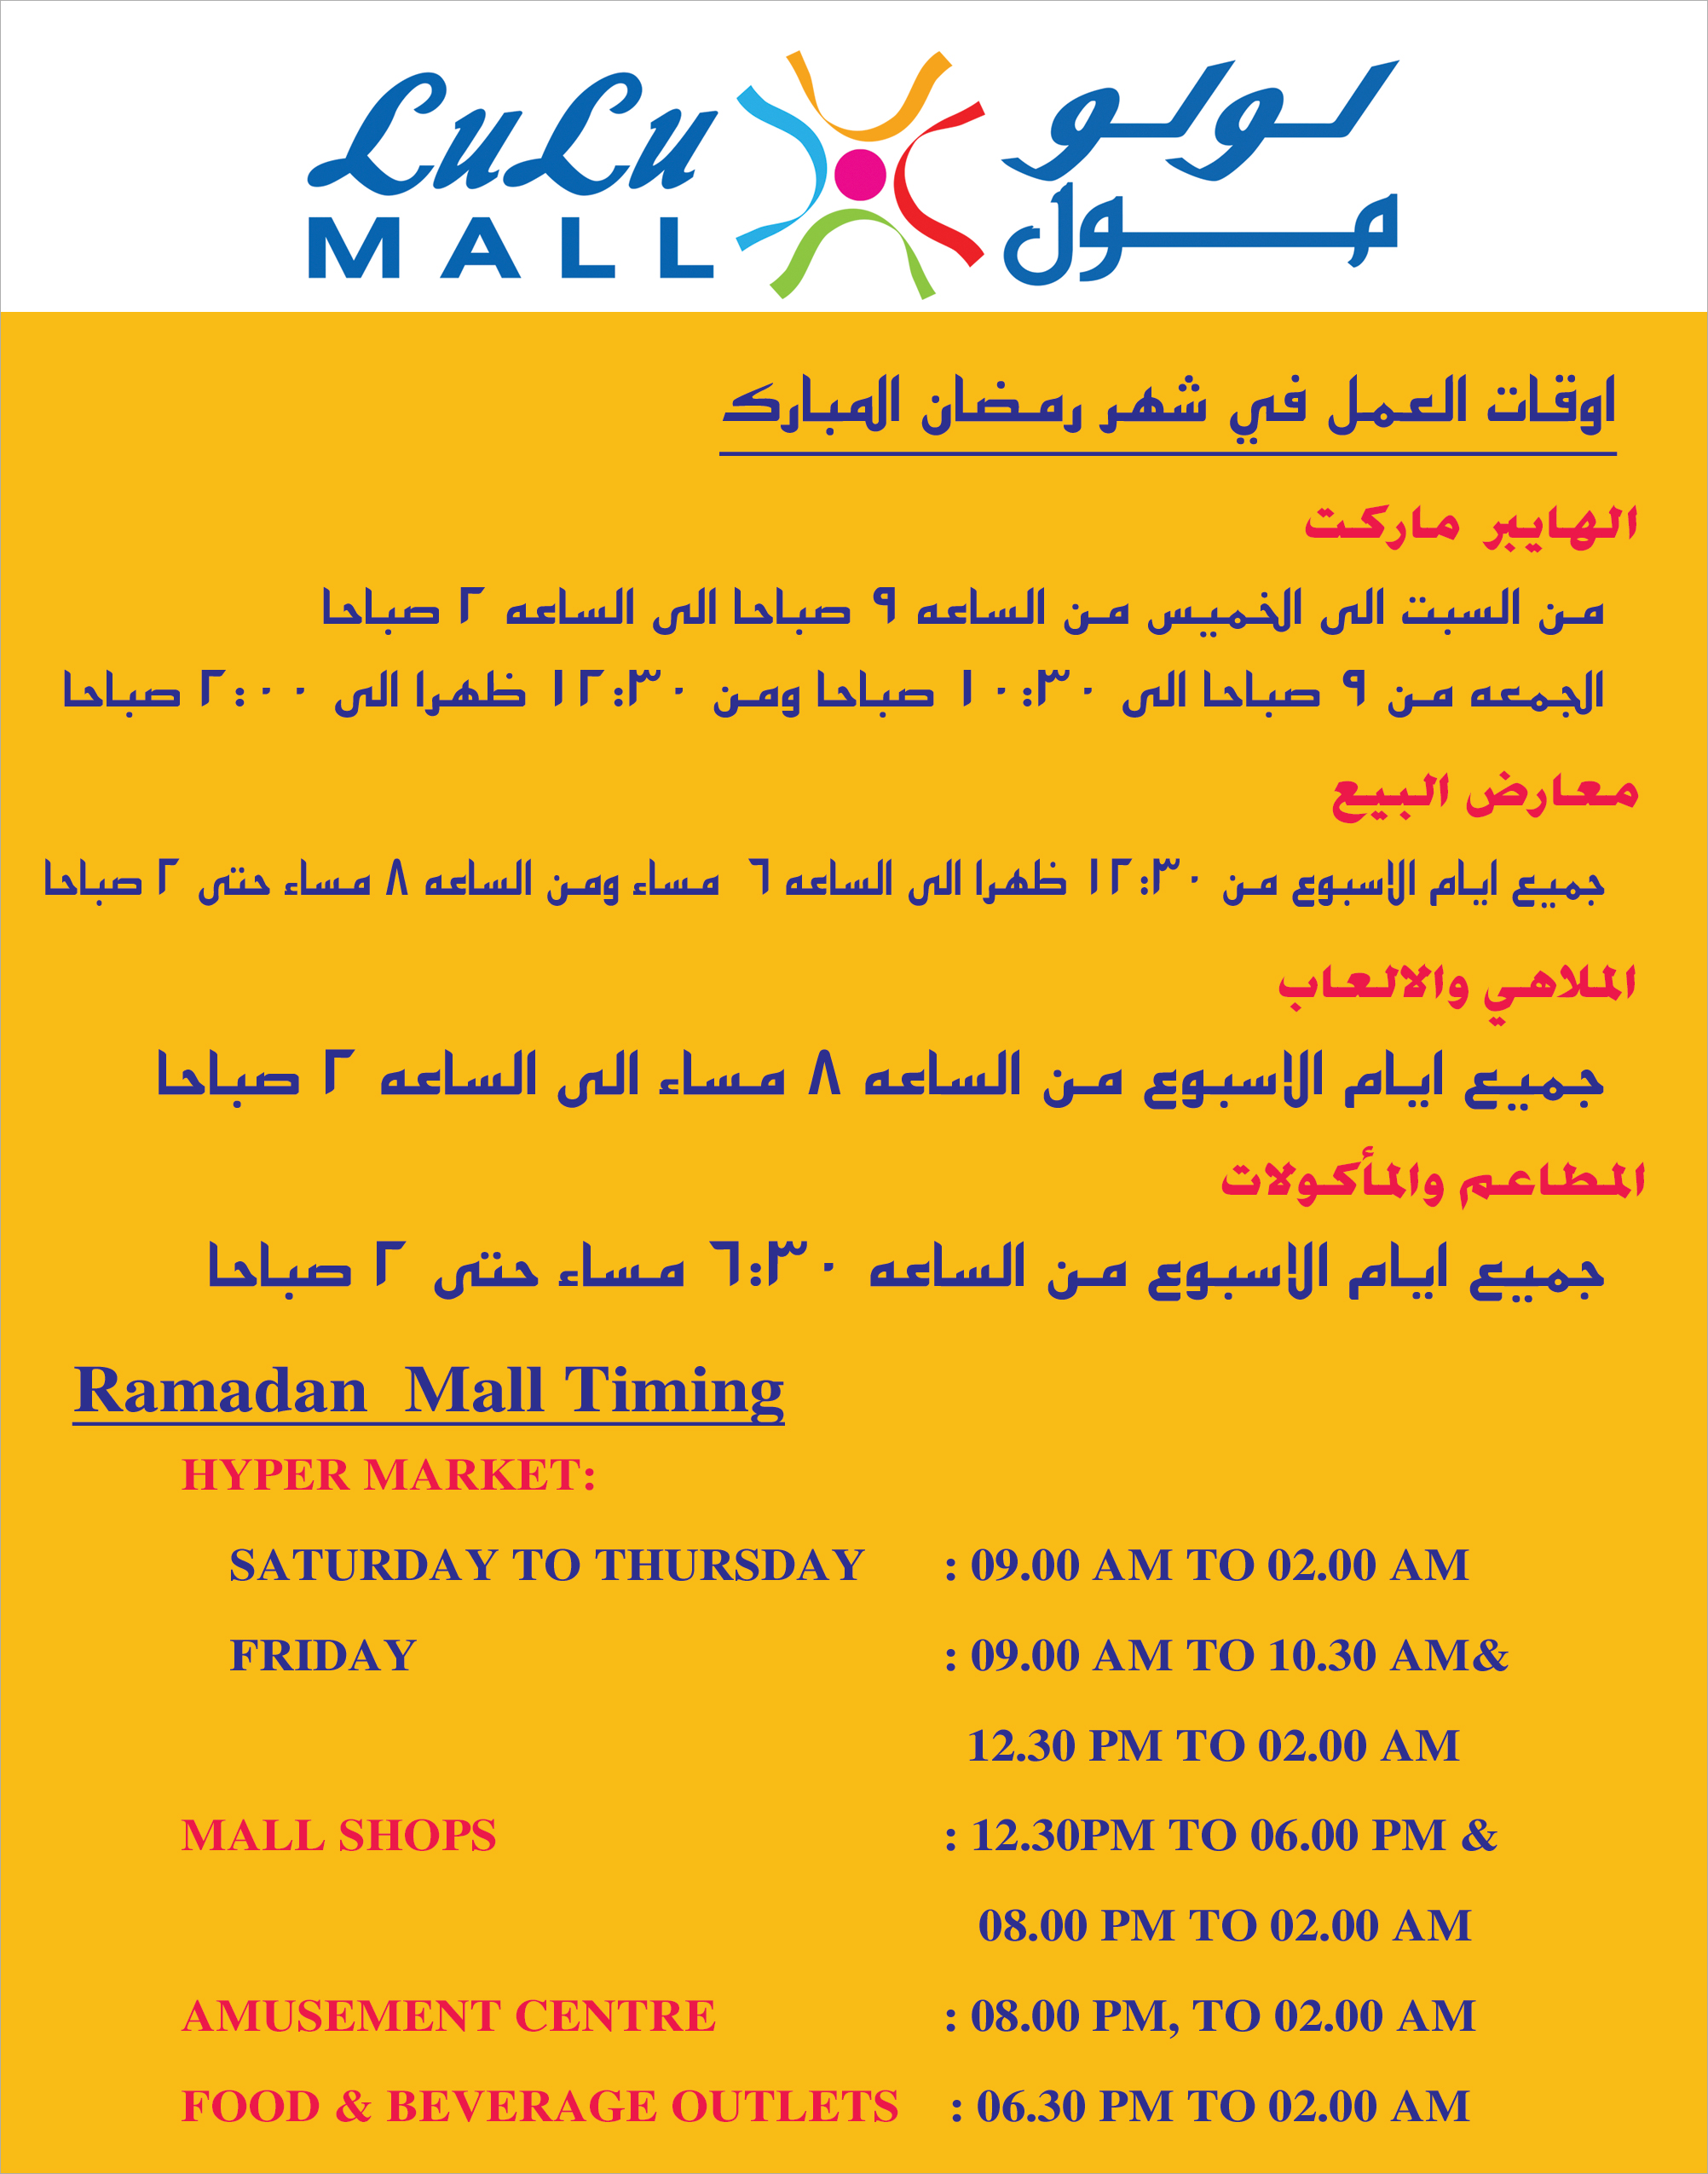 mall timing